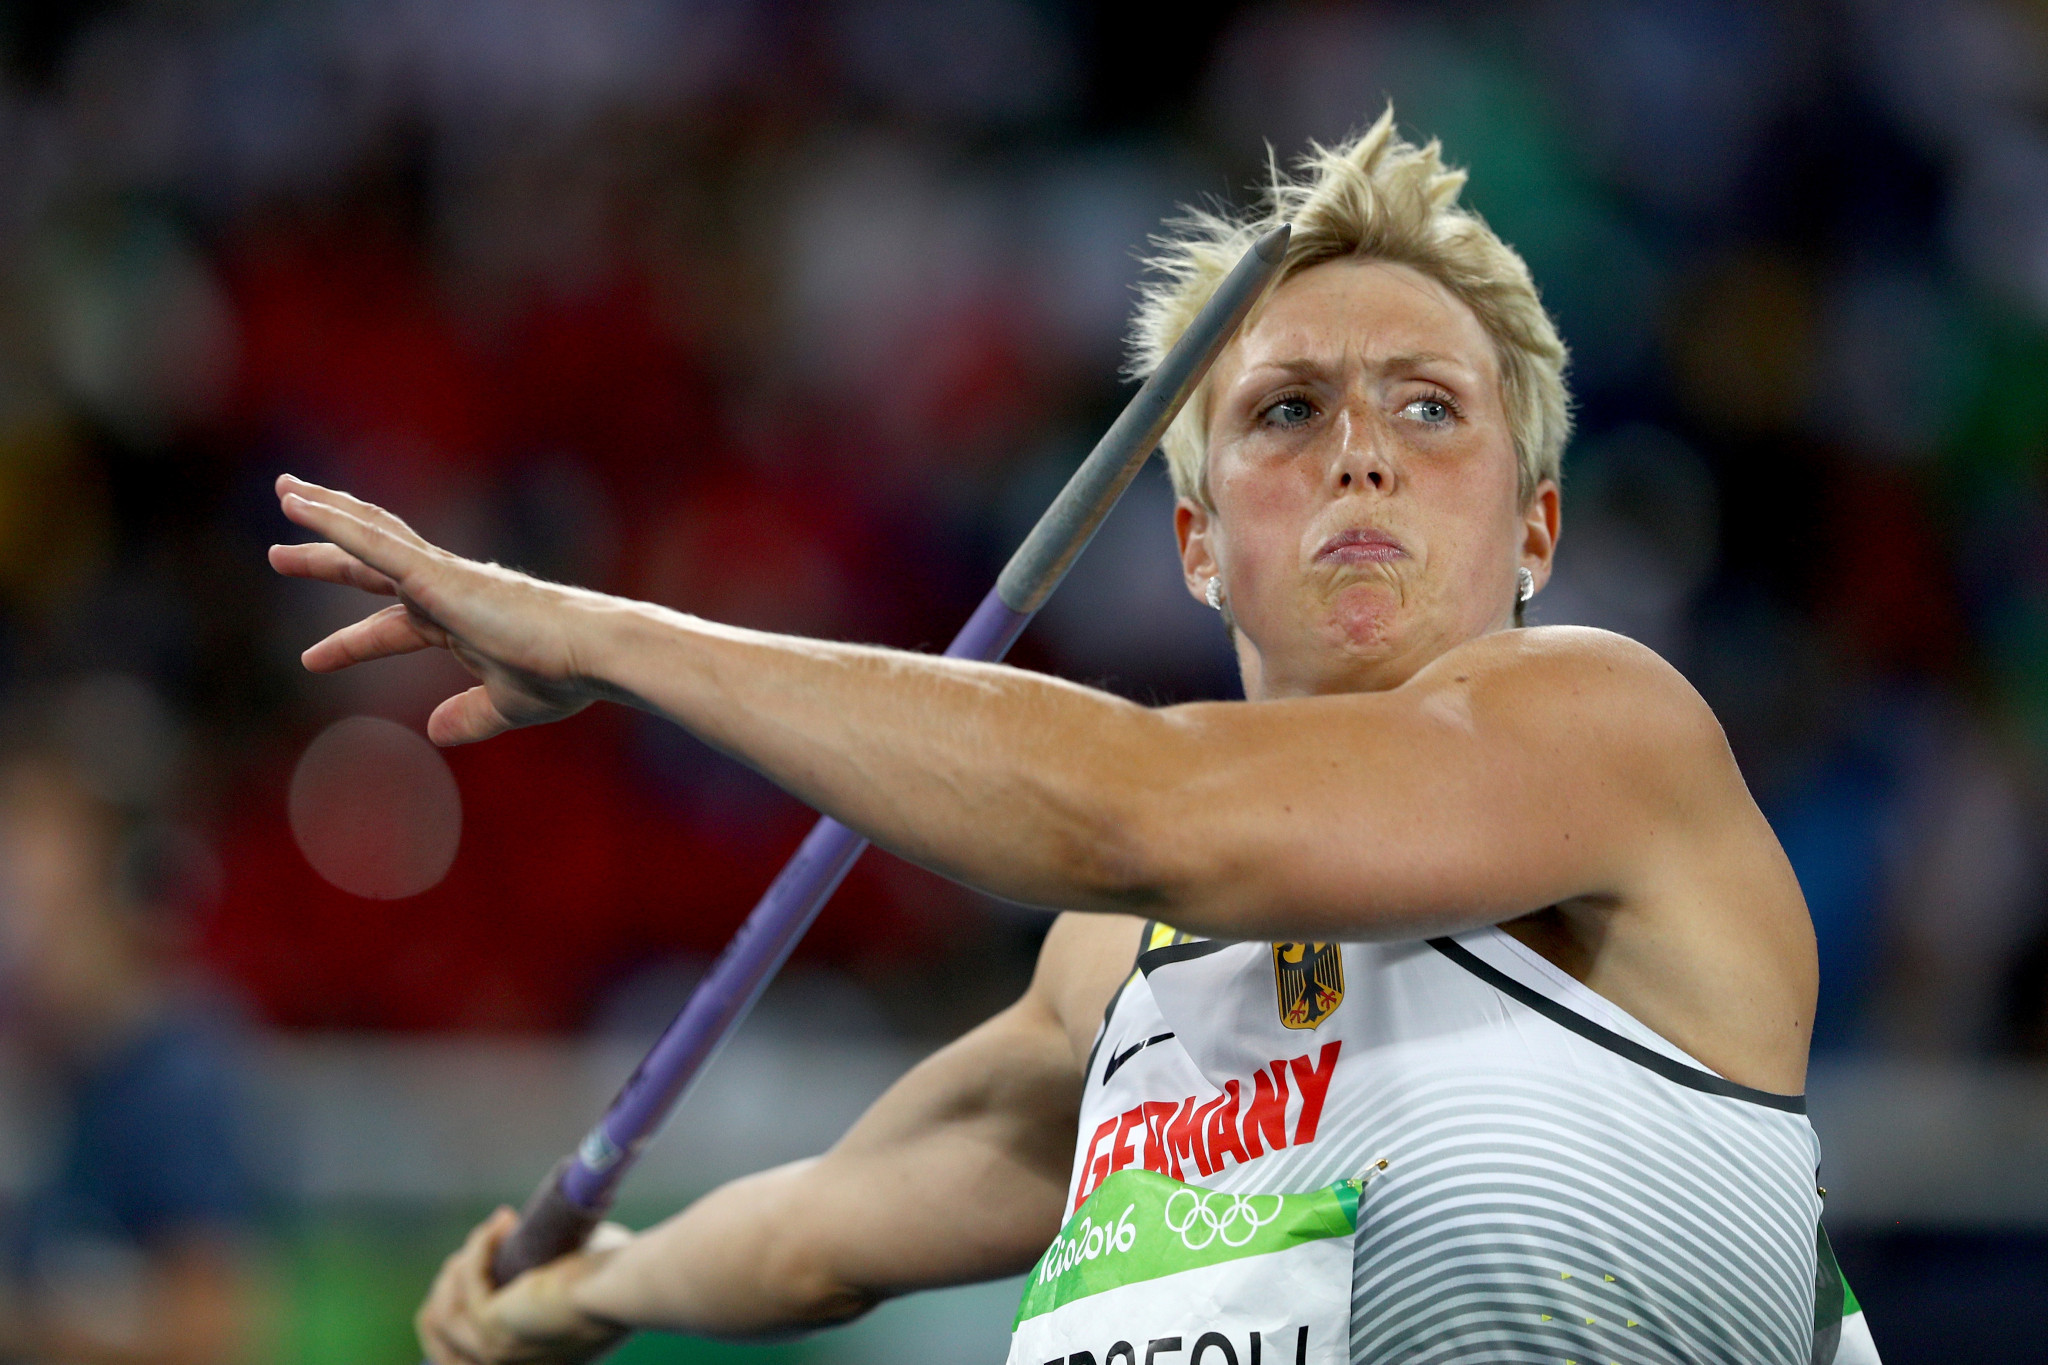 German javelin thrower Christina Obergföll has received her silver medal ©Getty Images